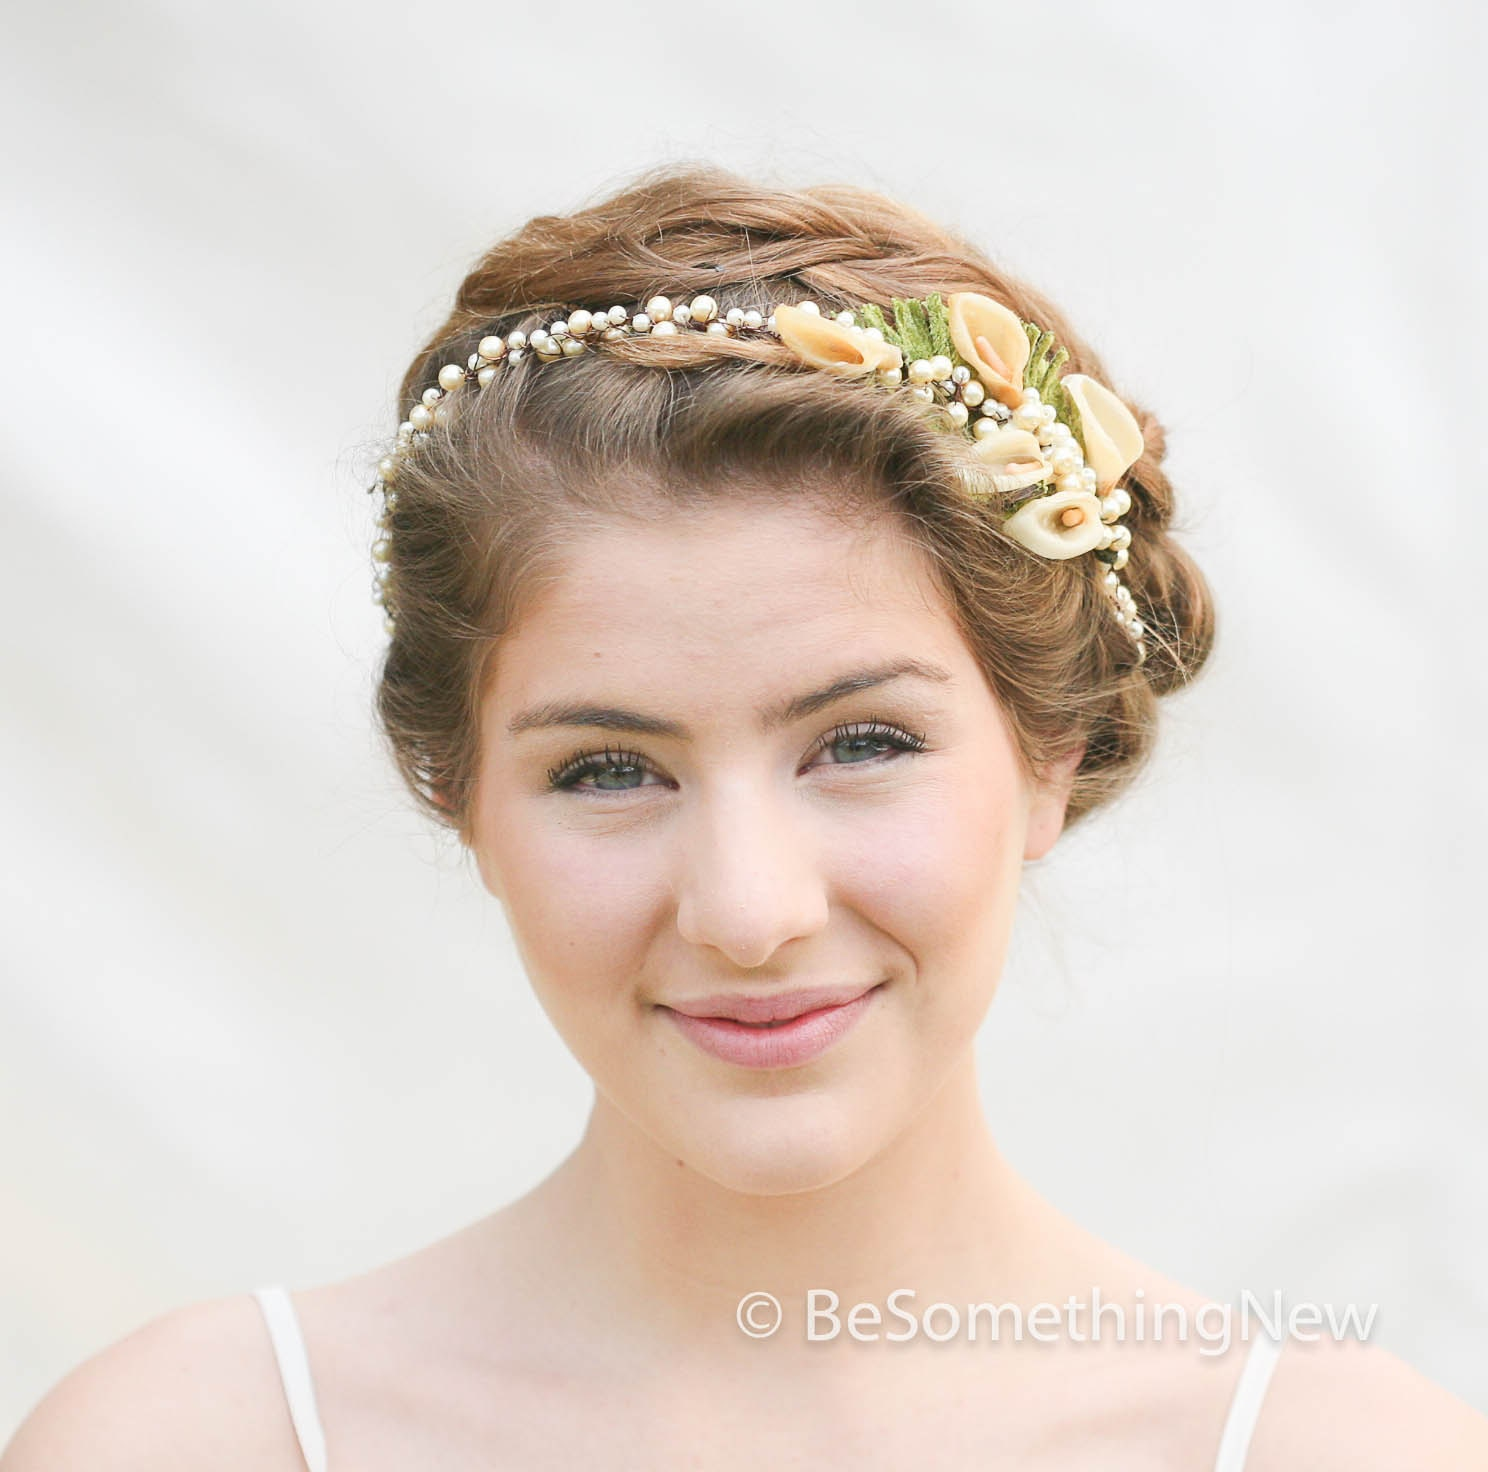 Vintage Wedding Headpieces: Vintage Wax Flower Pearl Headpiece Vintage Wedding Headpiece